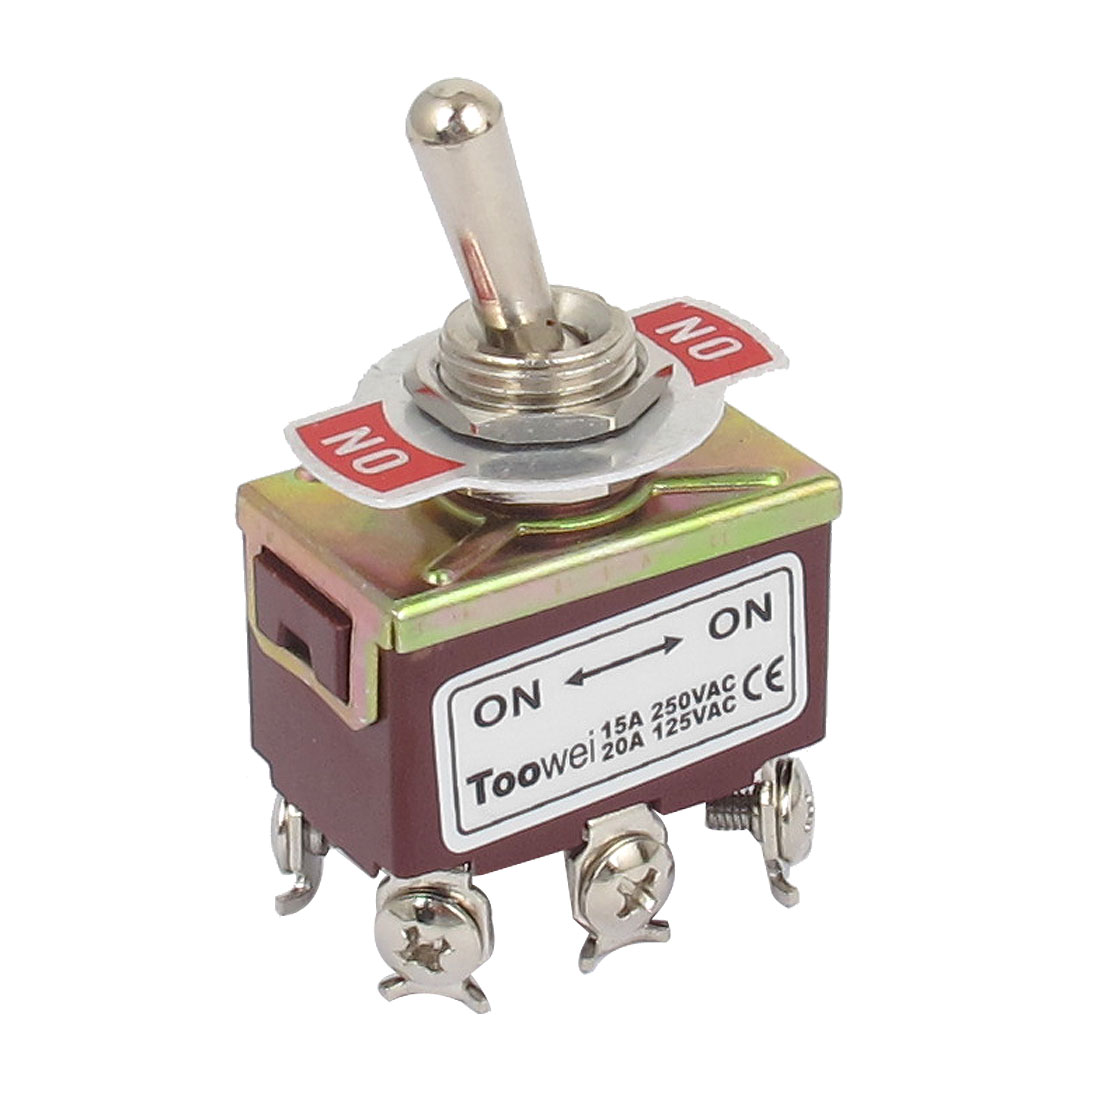 AC 250V/15A 125V/20A 6 Screw Terminals On-Off 2 Position DPDT Toggle Switch